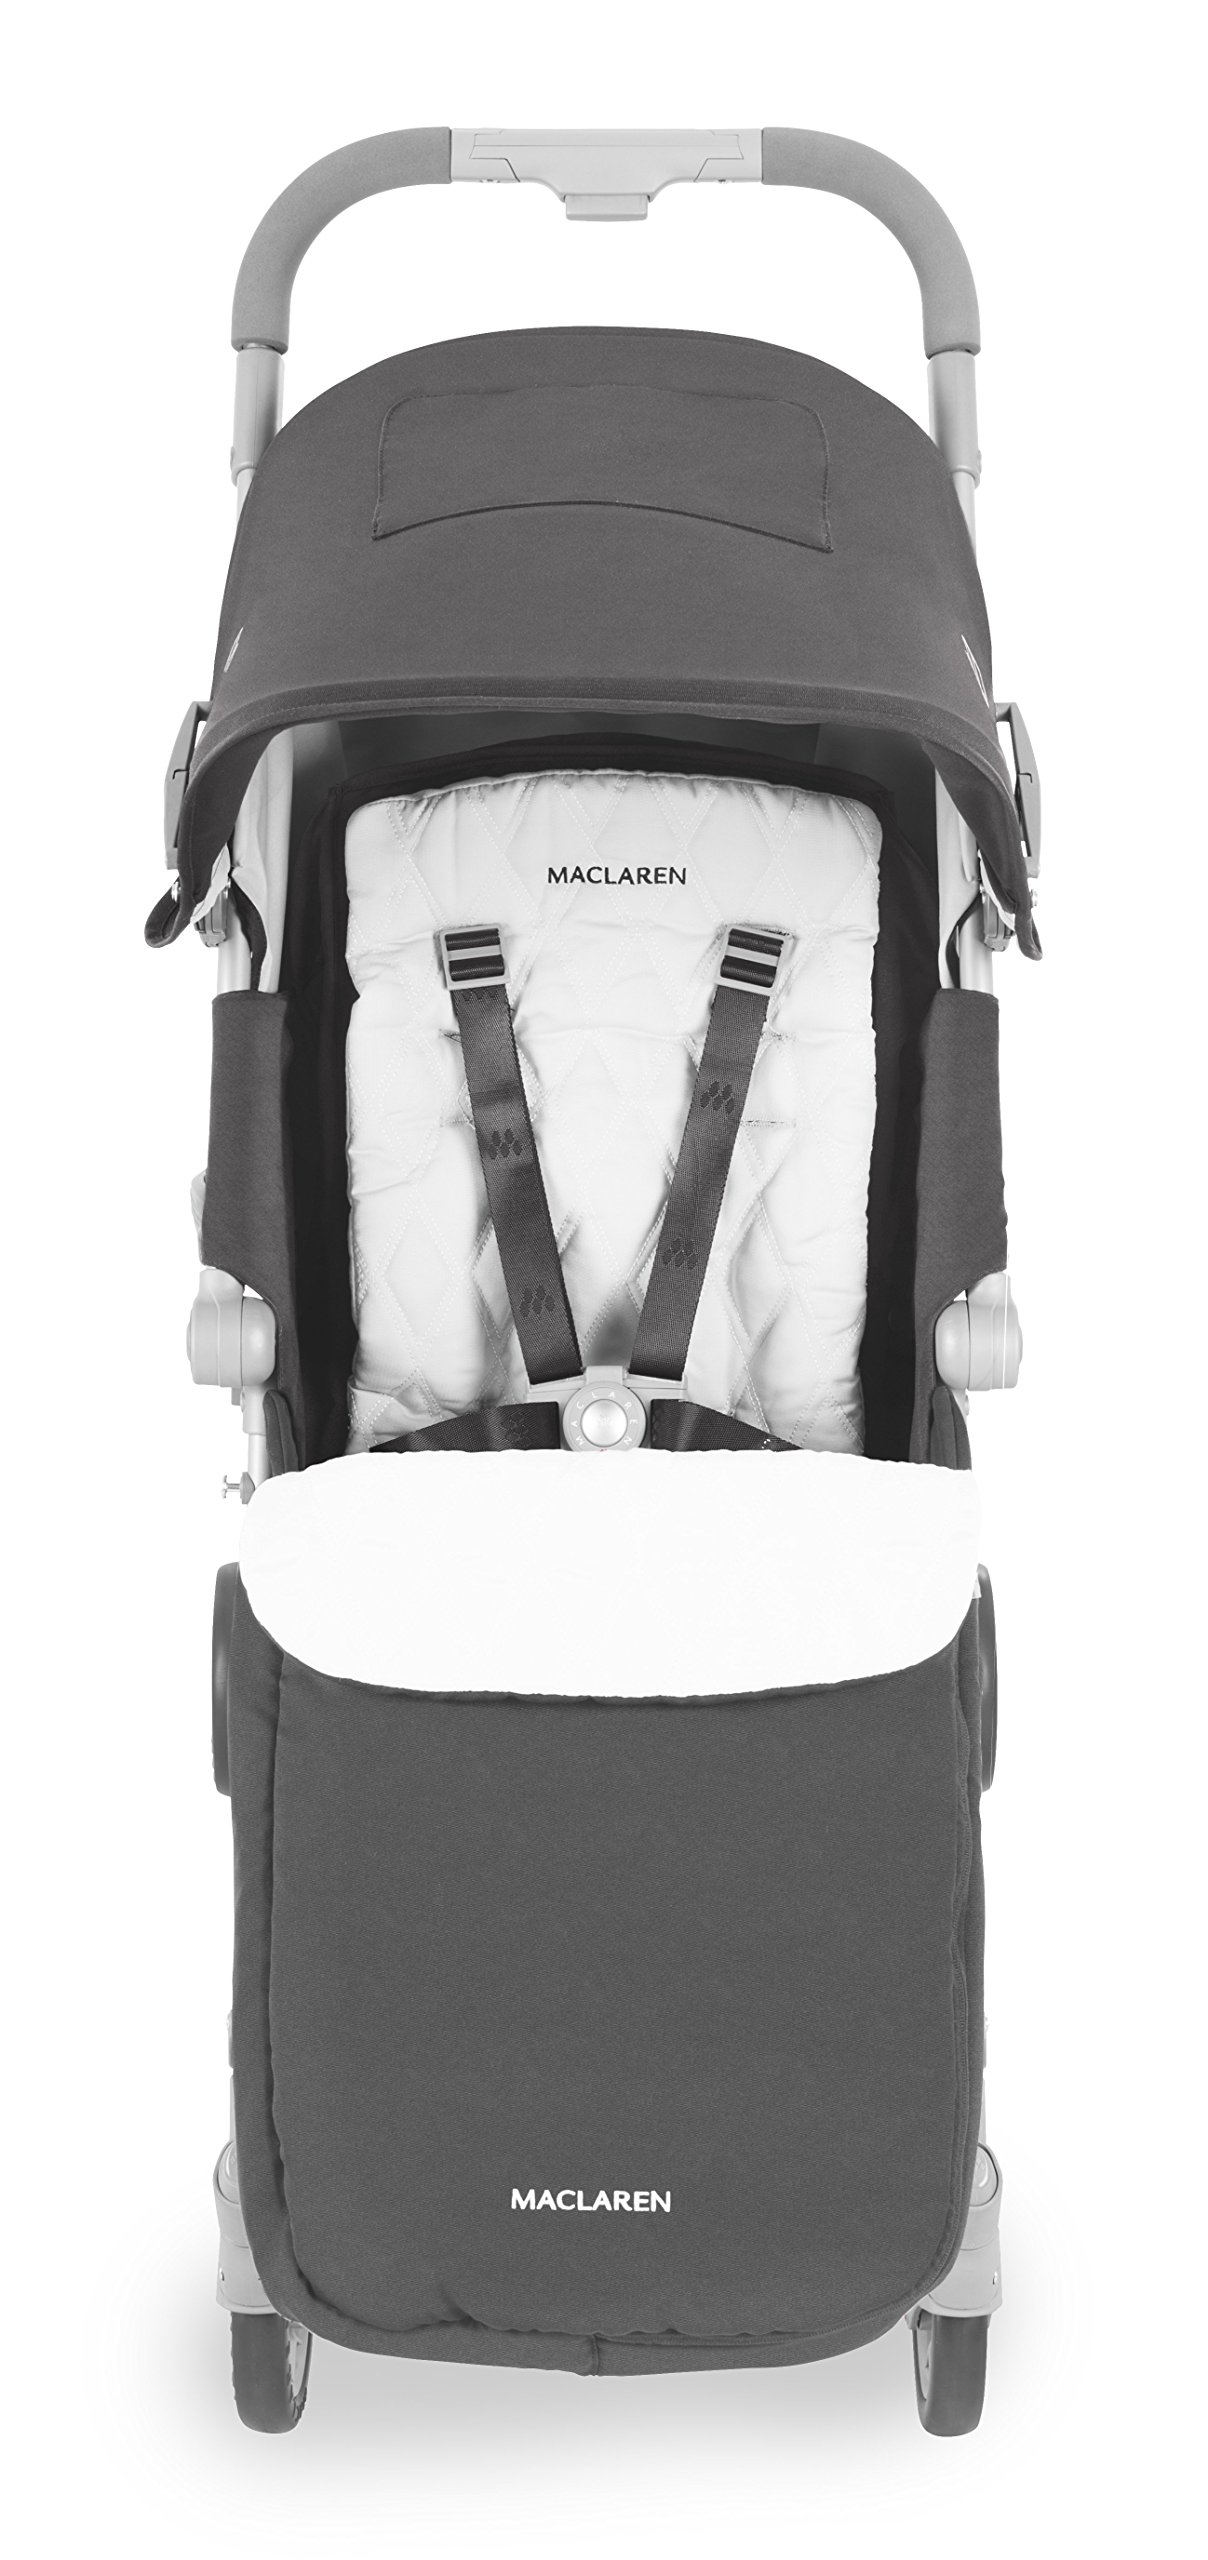 Maclaren Techno XLR arc Travel System Stroller Maclaren Basic weight of 6.7kg/14.8lb; ideal for new-borns and children up to 25kg/55lb (usa 65lb) Maclaren is the only brand to offer a sovereign lifetime warranty Extendable upf 50+ sun canopy and built-in sun visor 5